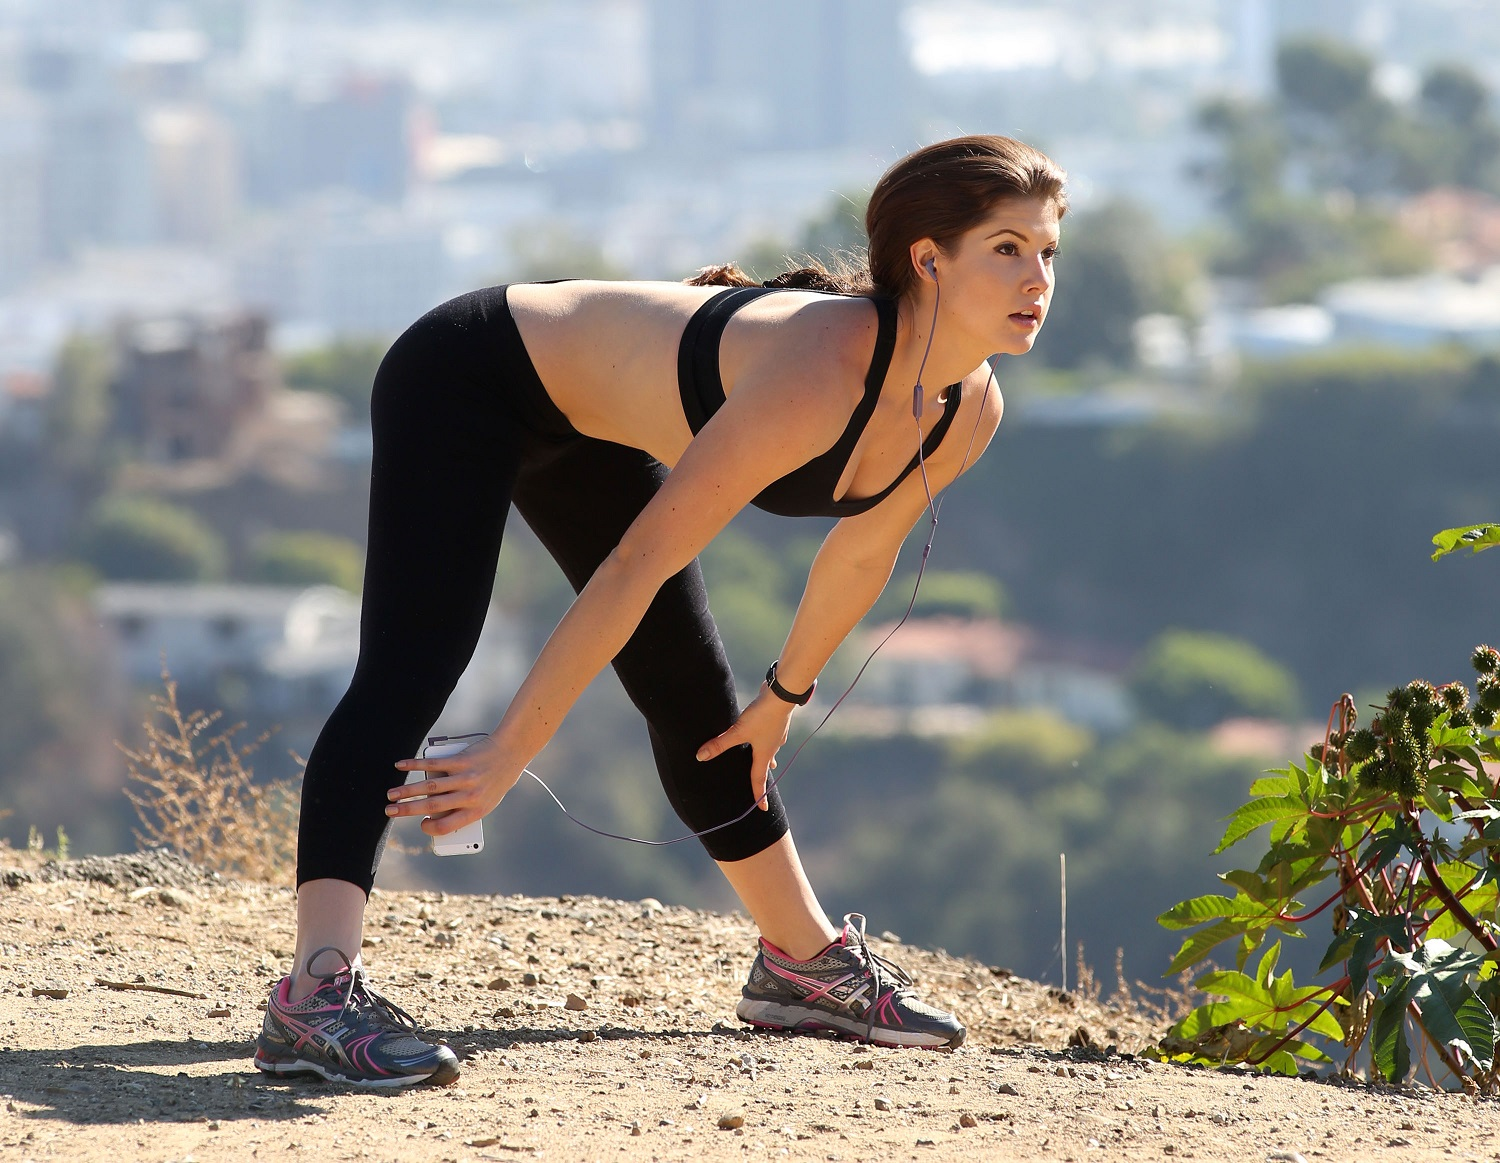 Amanda Cerny is working out in an open space. She is wearing a black sports-bra and a black yoga pant. She is holding a mobile phone in her right hand and has earphones plugged into her ears.